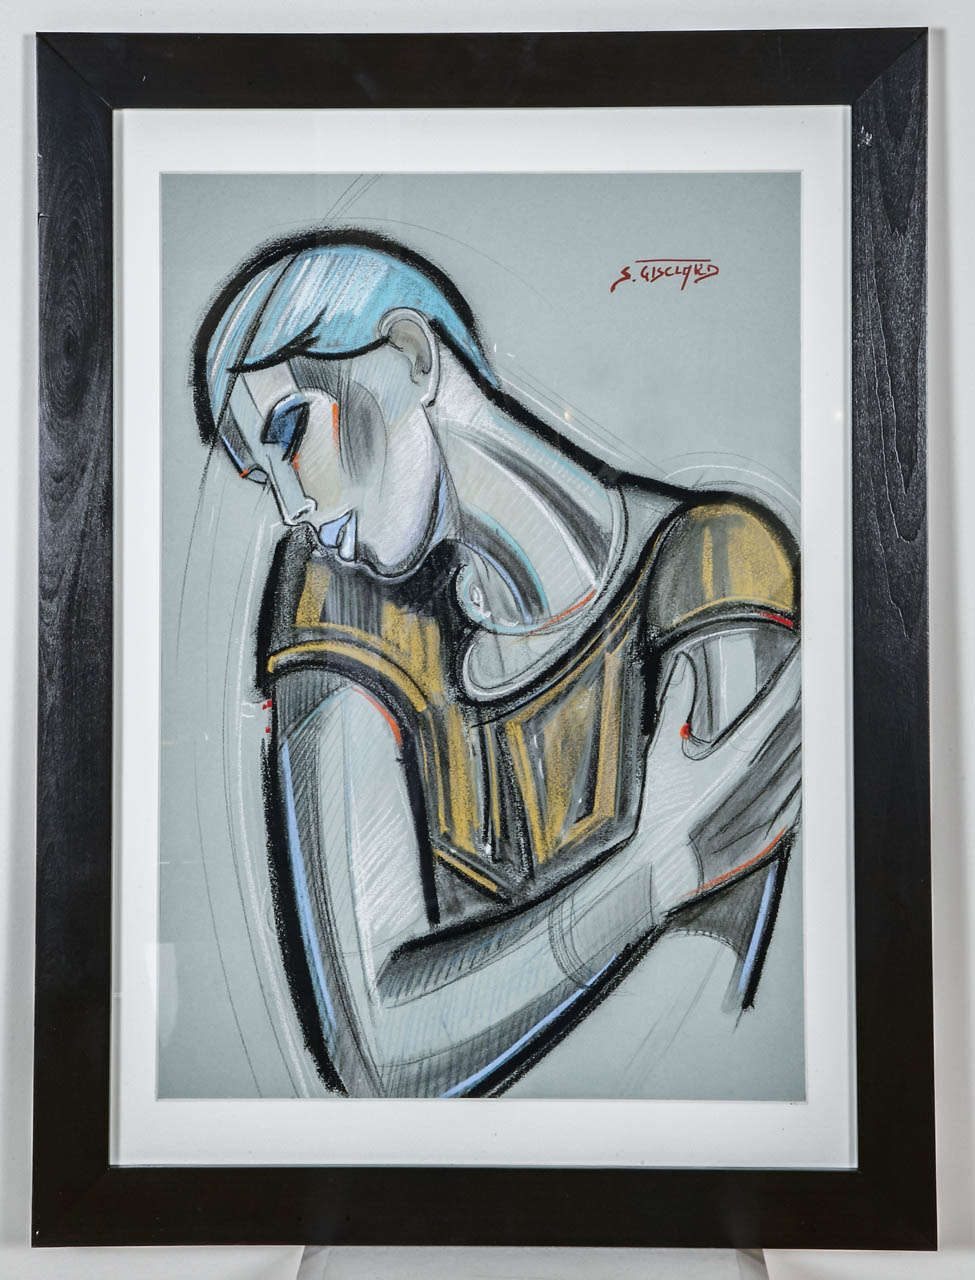 French contemporary pastel representing a young woman with an urchin cut ('coupe à la garçonne'). Signed on the top right. Pastel dimension: 42cm x 60cm. Black frame dimension: 58cm x 78cm.